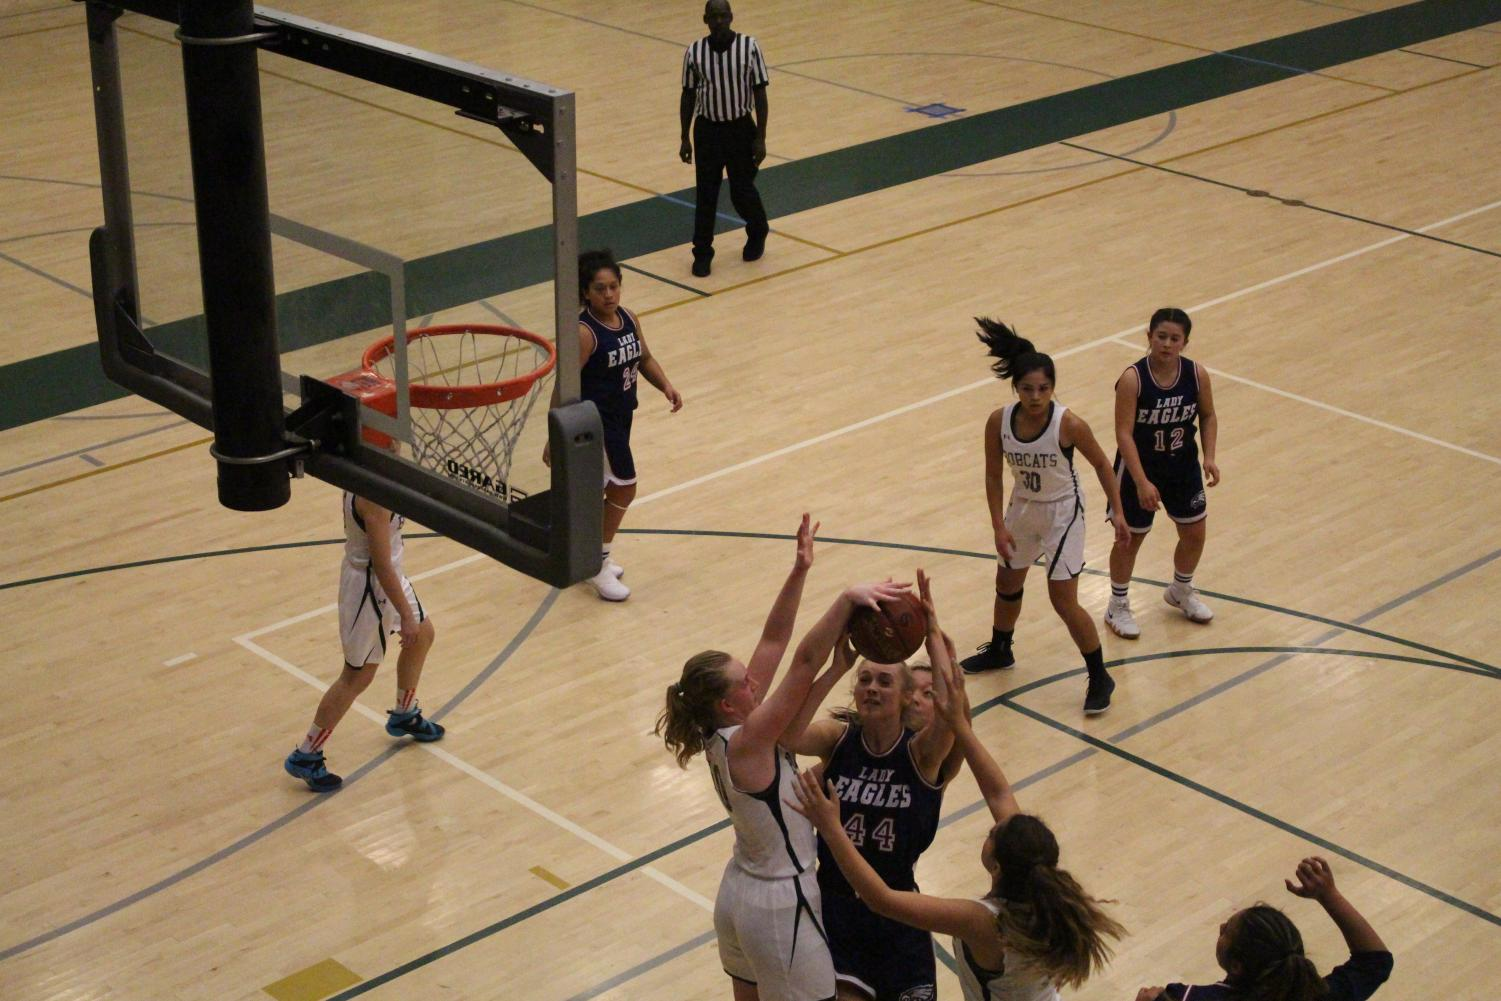 Junior Claire Perhach blocks an opposing player as she goes up for a layup. Perhach is a vital part of the defense providing a strong presence down low.